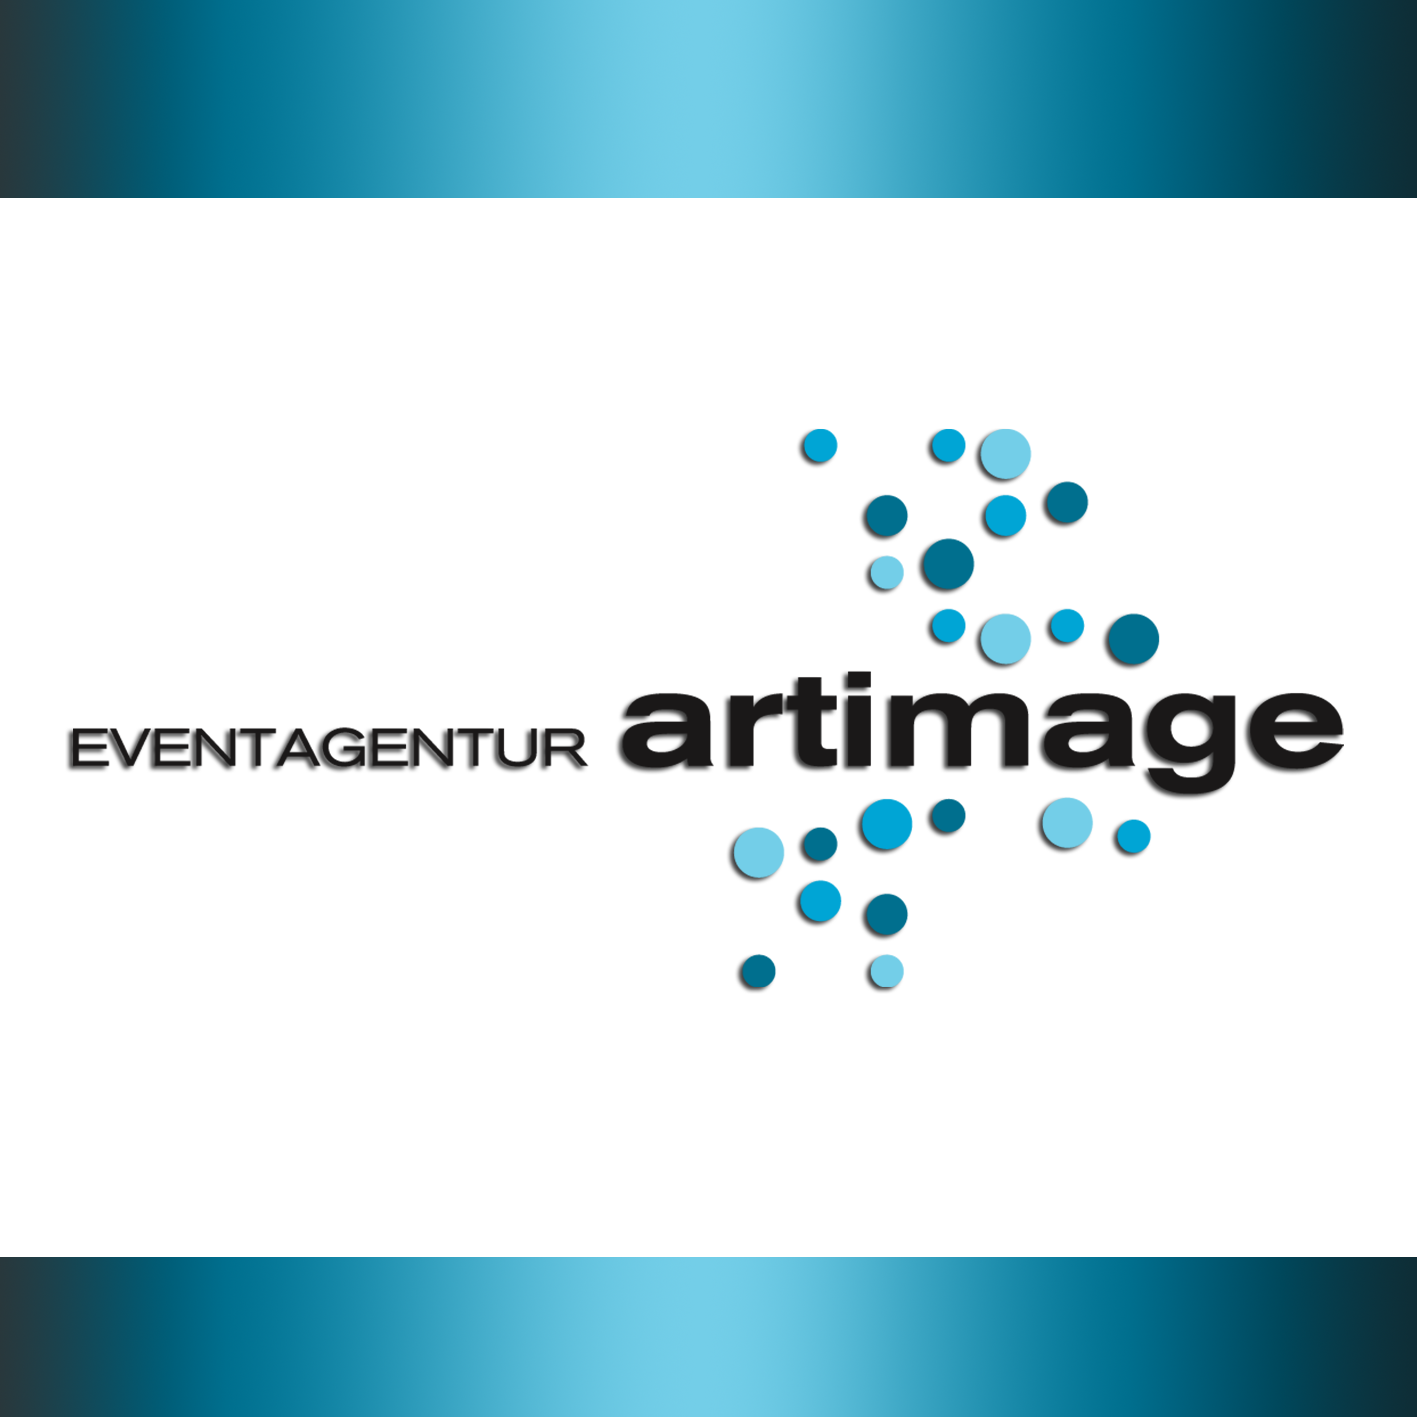 Logo - EVENTAGENTUR artimage e.K.